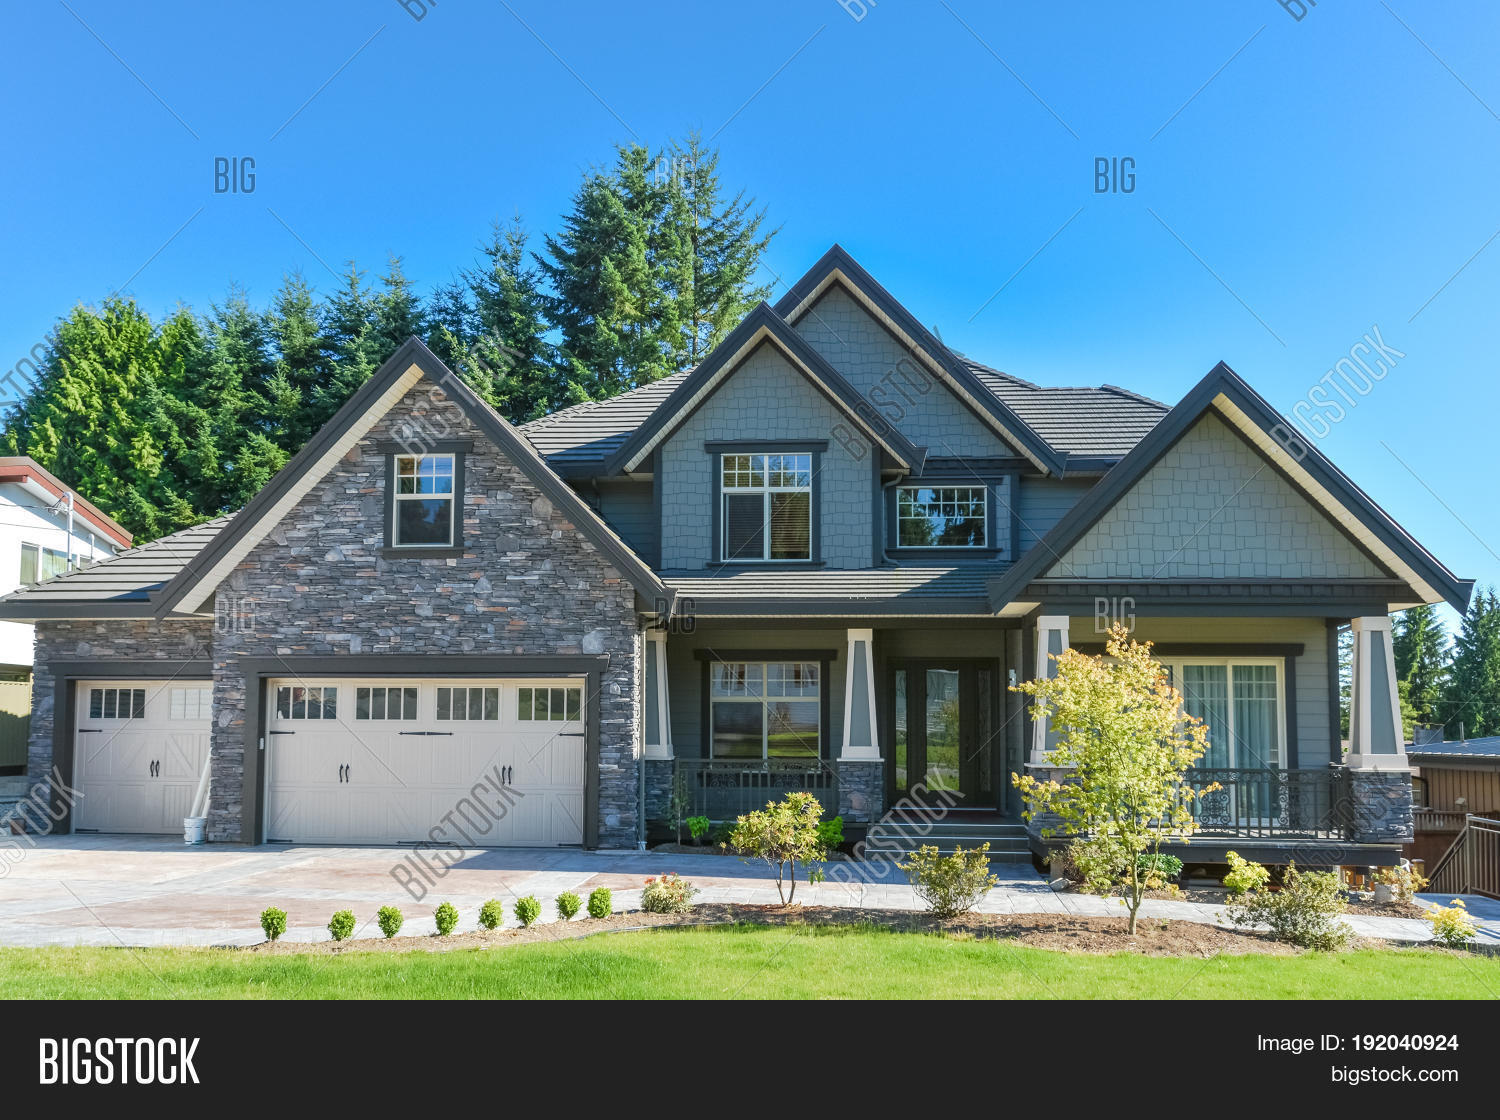 nd New Luxury Image & Photo (Free Trial) | Bigstock House With Big Garage on cars with garages, big 1 story homes, big old houses, big garage homes, big inside of garage, big house with cars, boats with garages, big mansion bedrooms, mansions with garages, big old garages, big brick house, big houses for cheap prices, big nice house inside, big houses on islands, big house with yard, big houses beautiful houses, big narco houses, million dollar garages, house plans with large garages, inside of house garages,